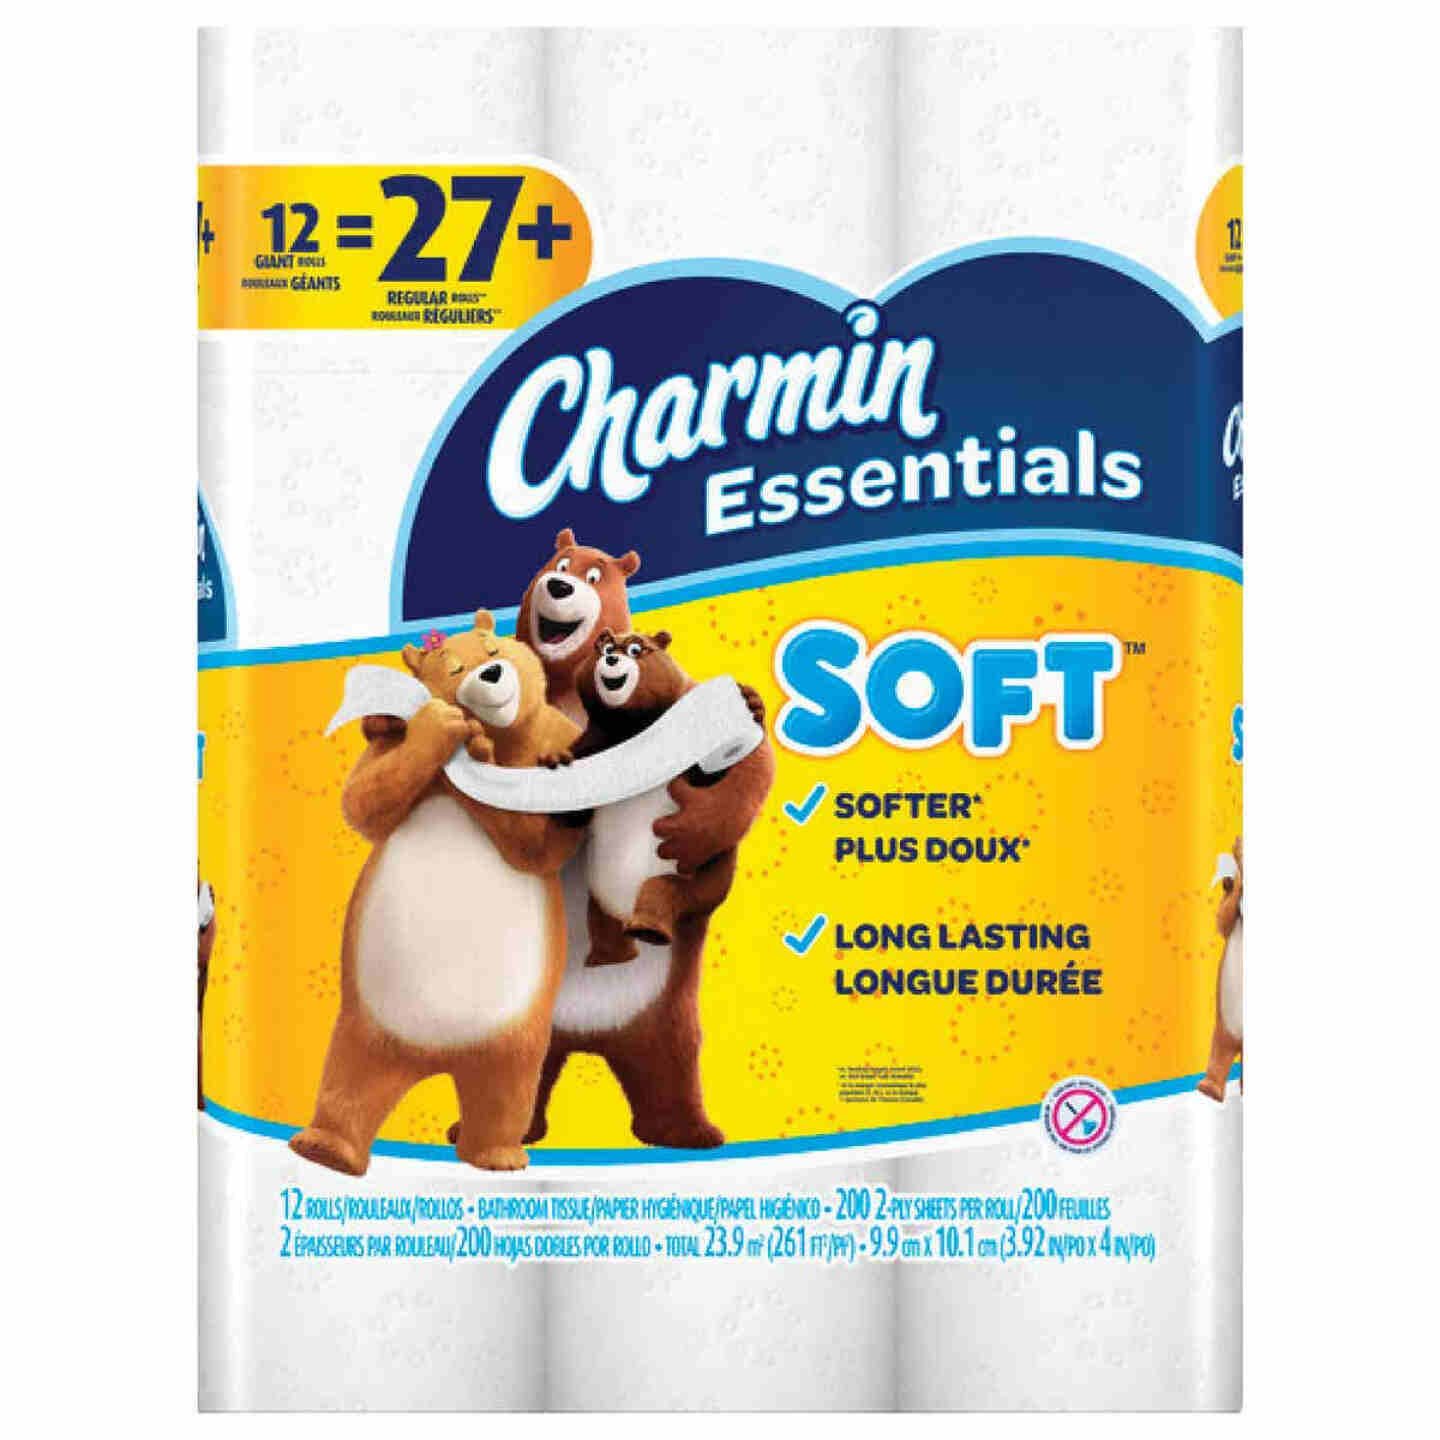 Charmin Essentials Soft Toilet Paper (12 Giant Rolls) Image 1